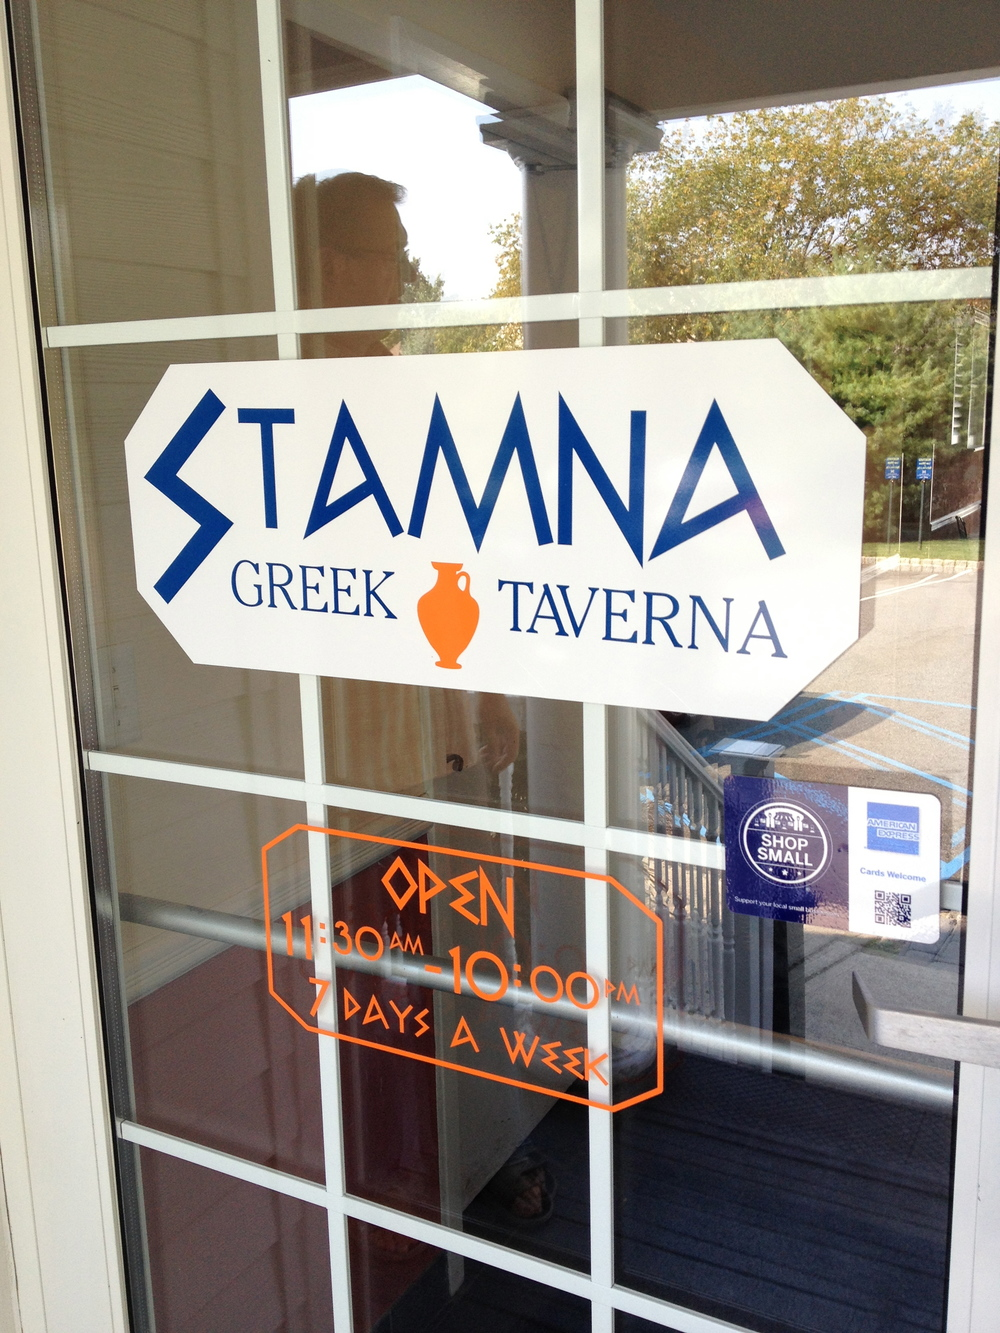 The backdoor at Stamna Greek Taverna on Main Street in Little Falls.